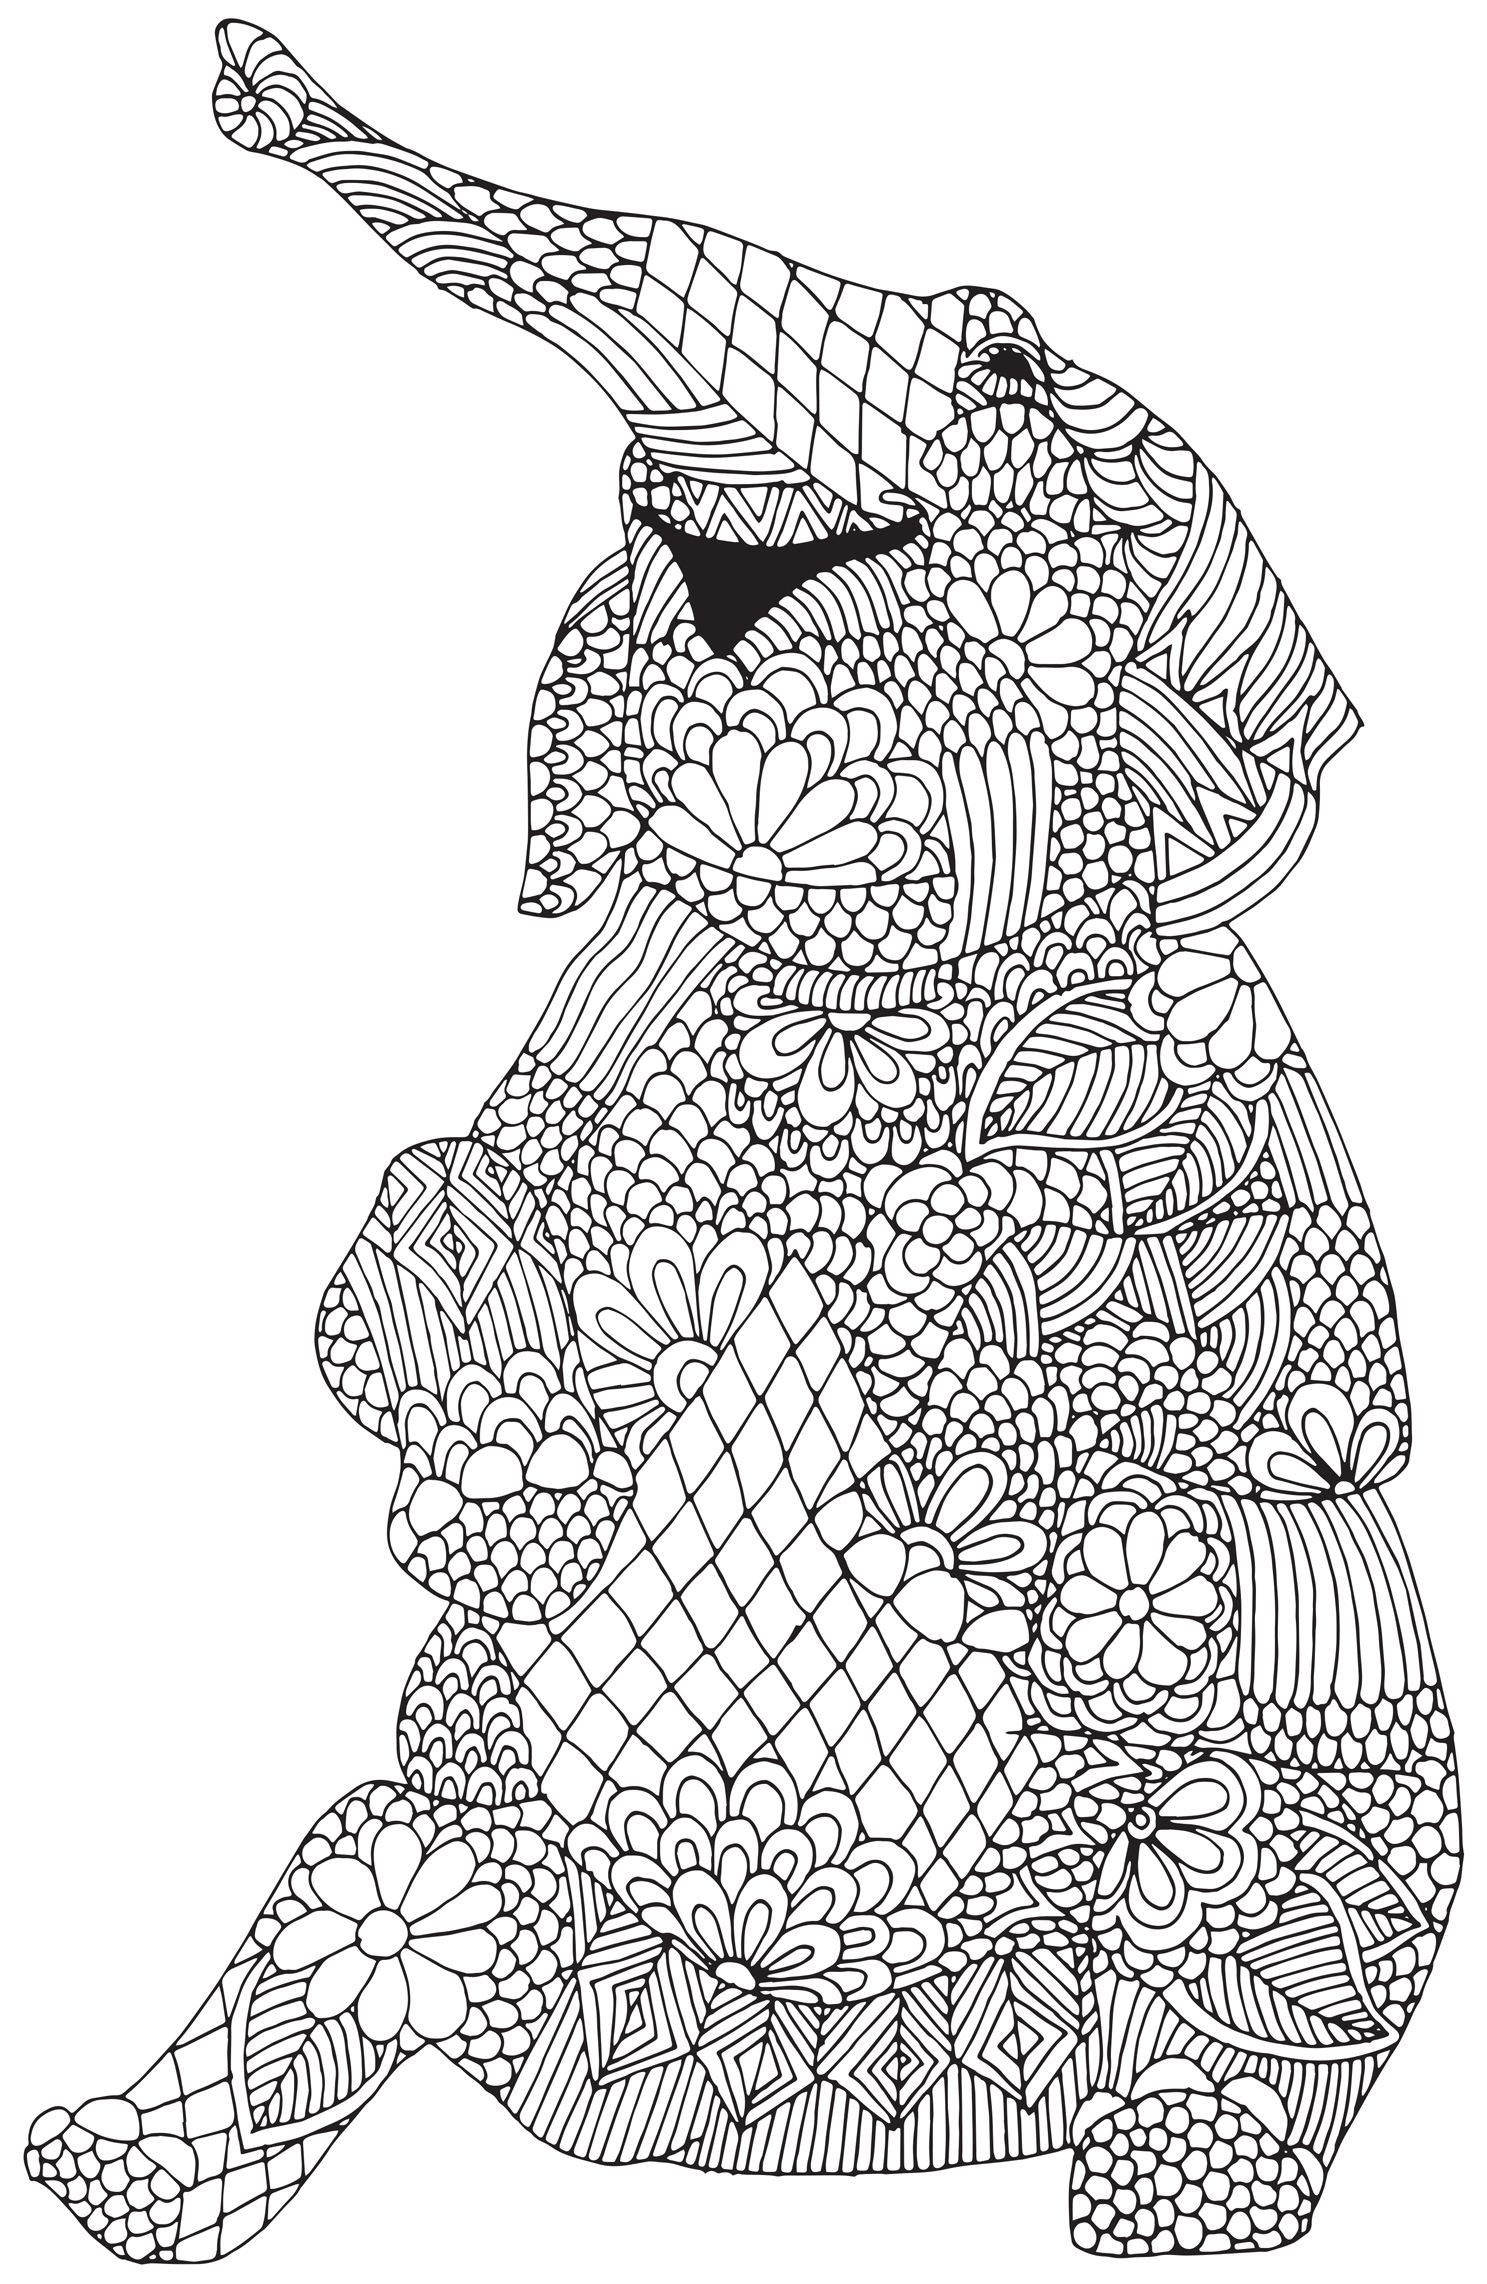 Anti stress colouring pages for adults - Explore Coloring For Adults And More